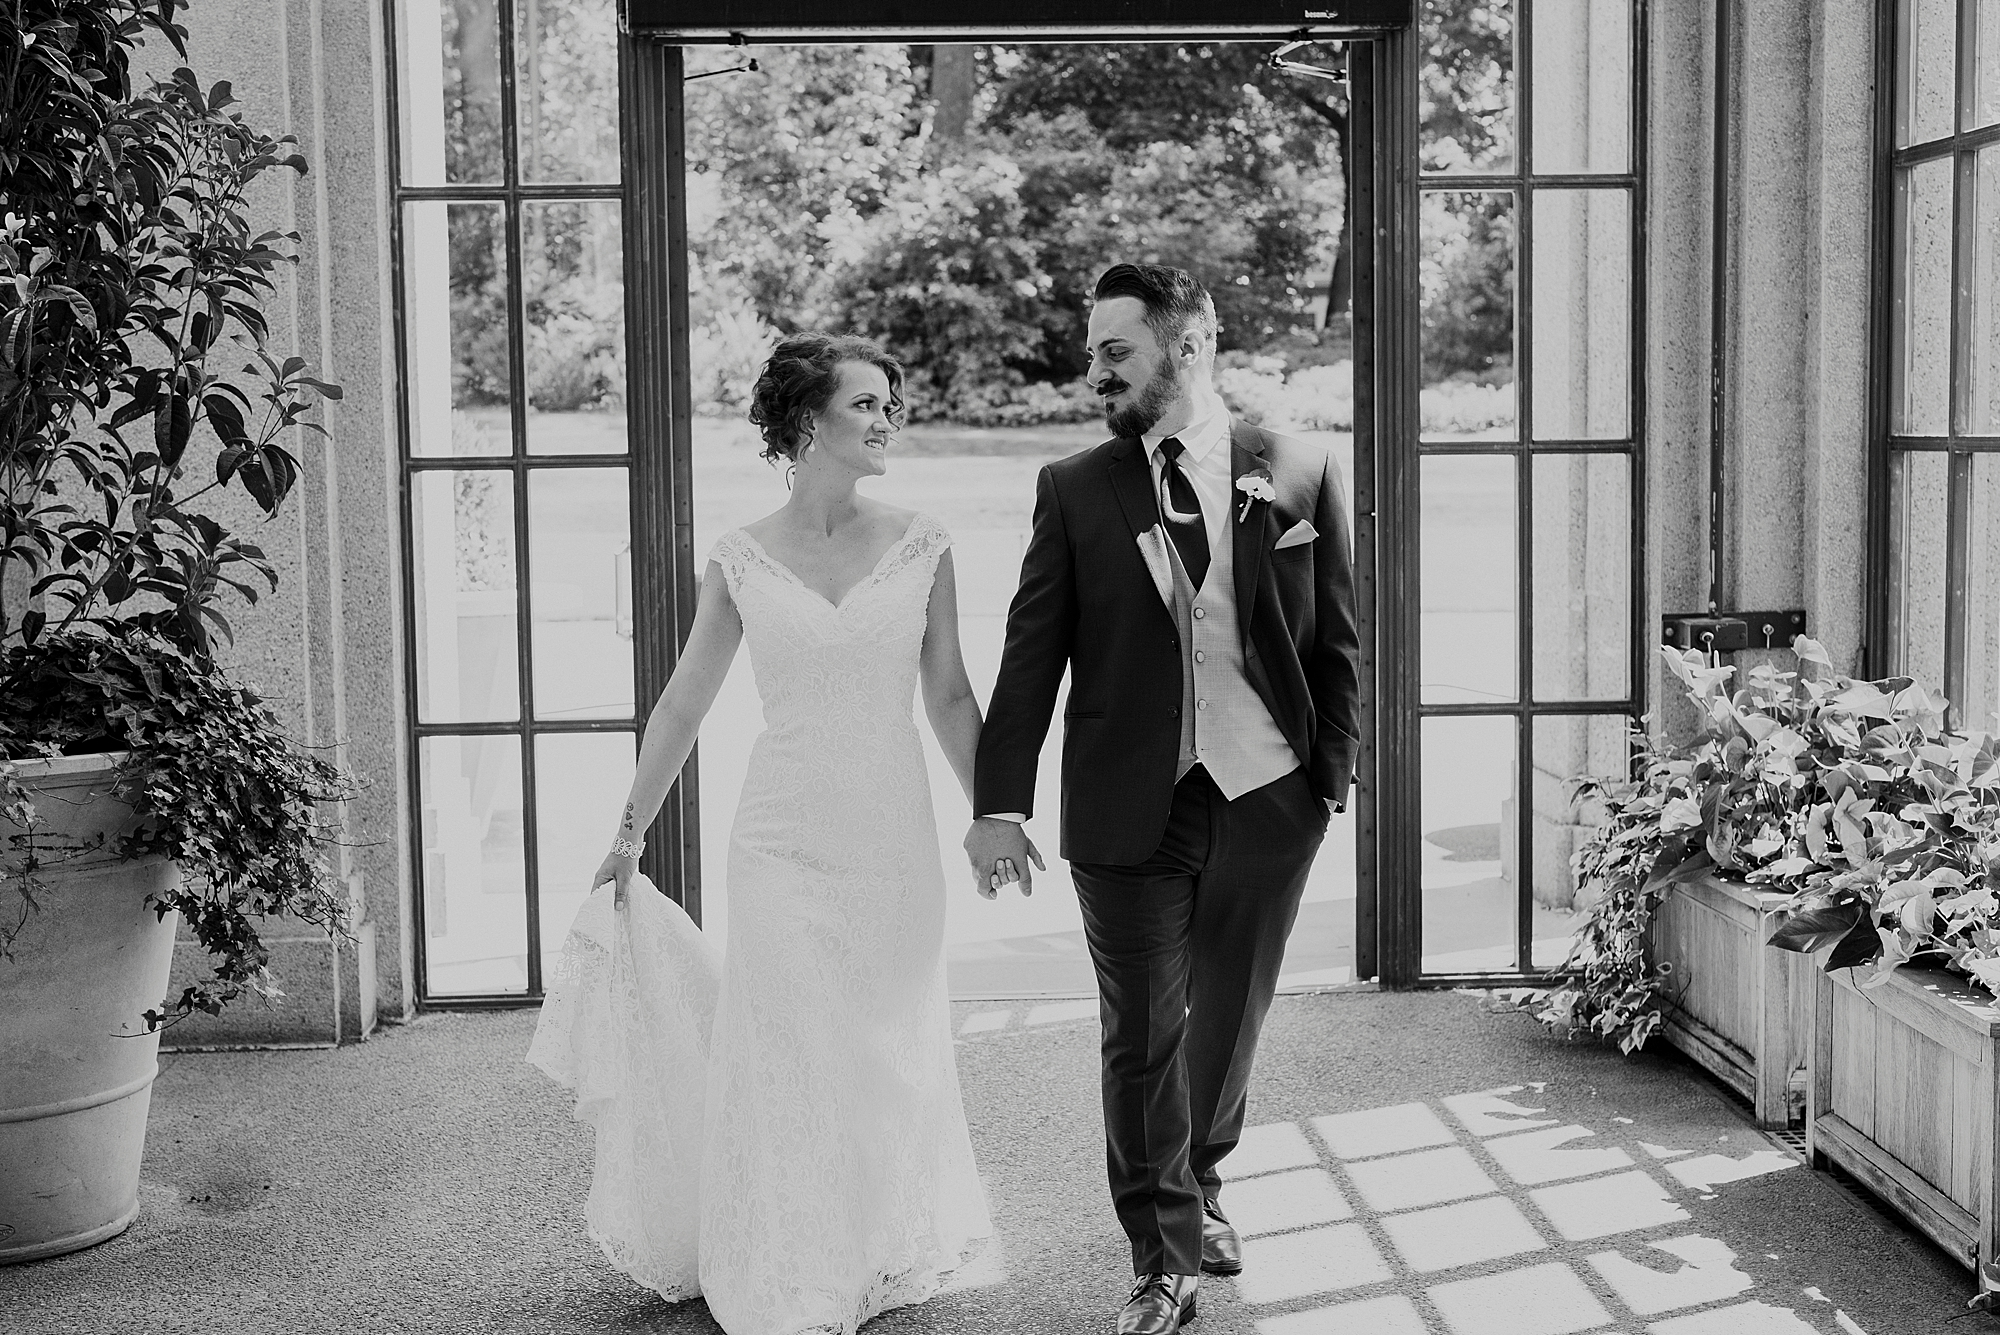 Megan and Daniel_Northbrook_Marketplace_Longwood_Gardens_Chester_County_Unionville_Love_by_Joe_Mac_Wedding_photography__0050.jpg